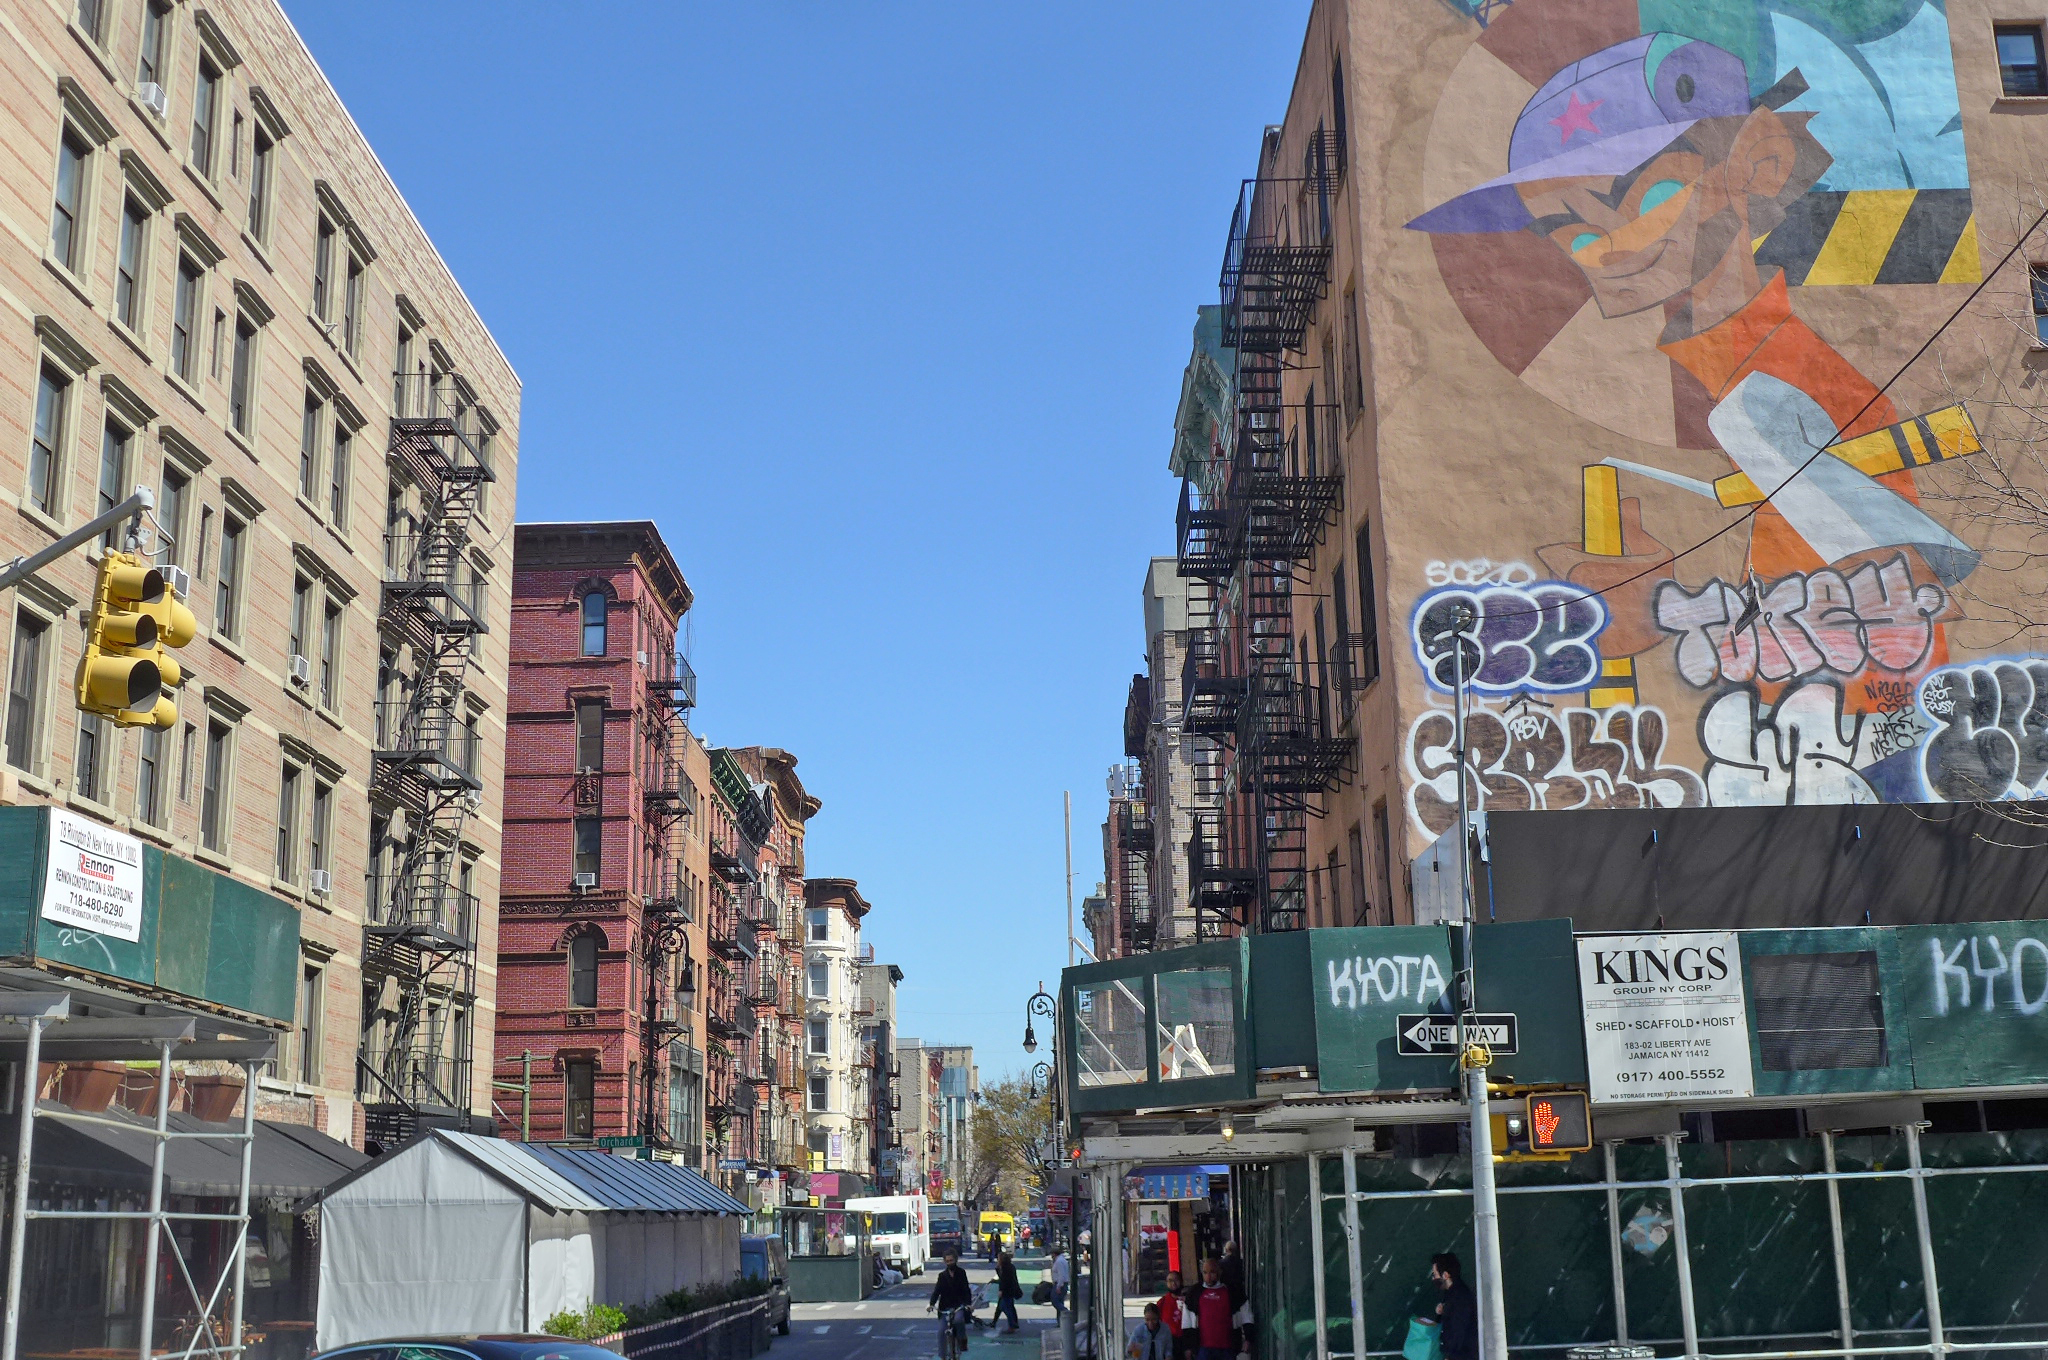 Two rows of receding tenements with a sliver of blue sky in between.